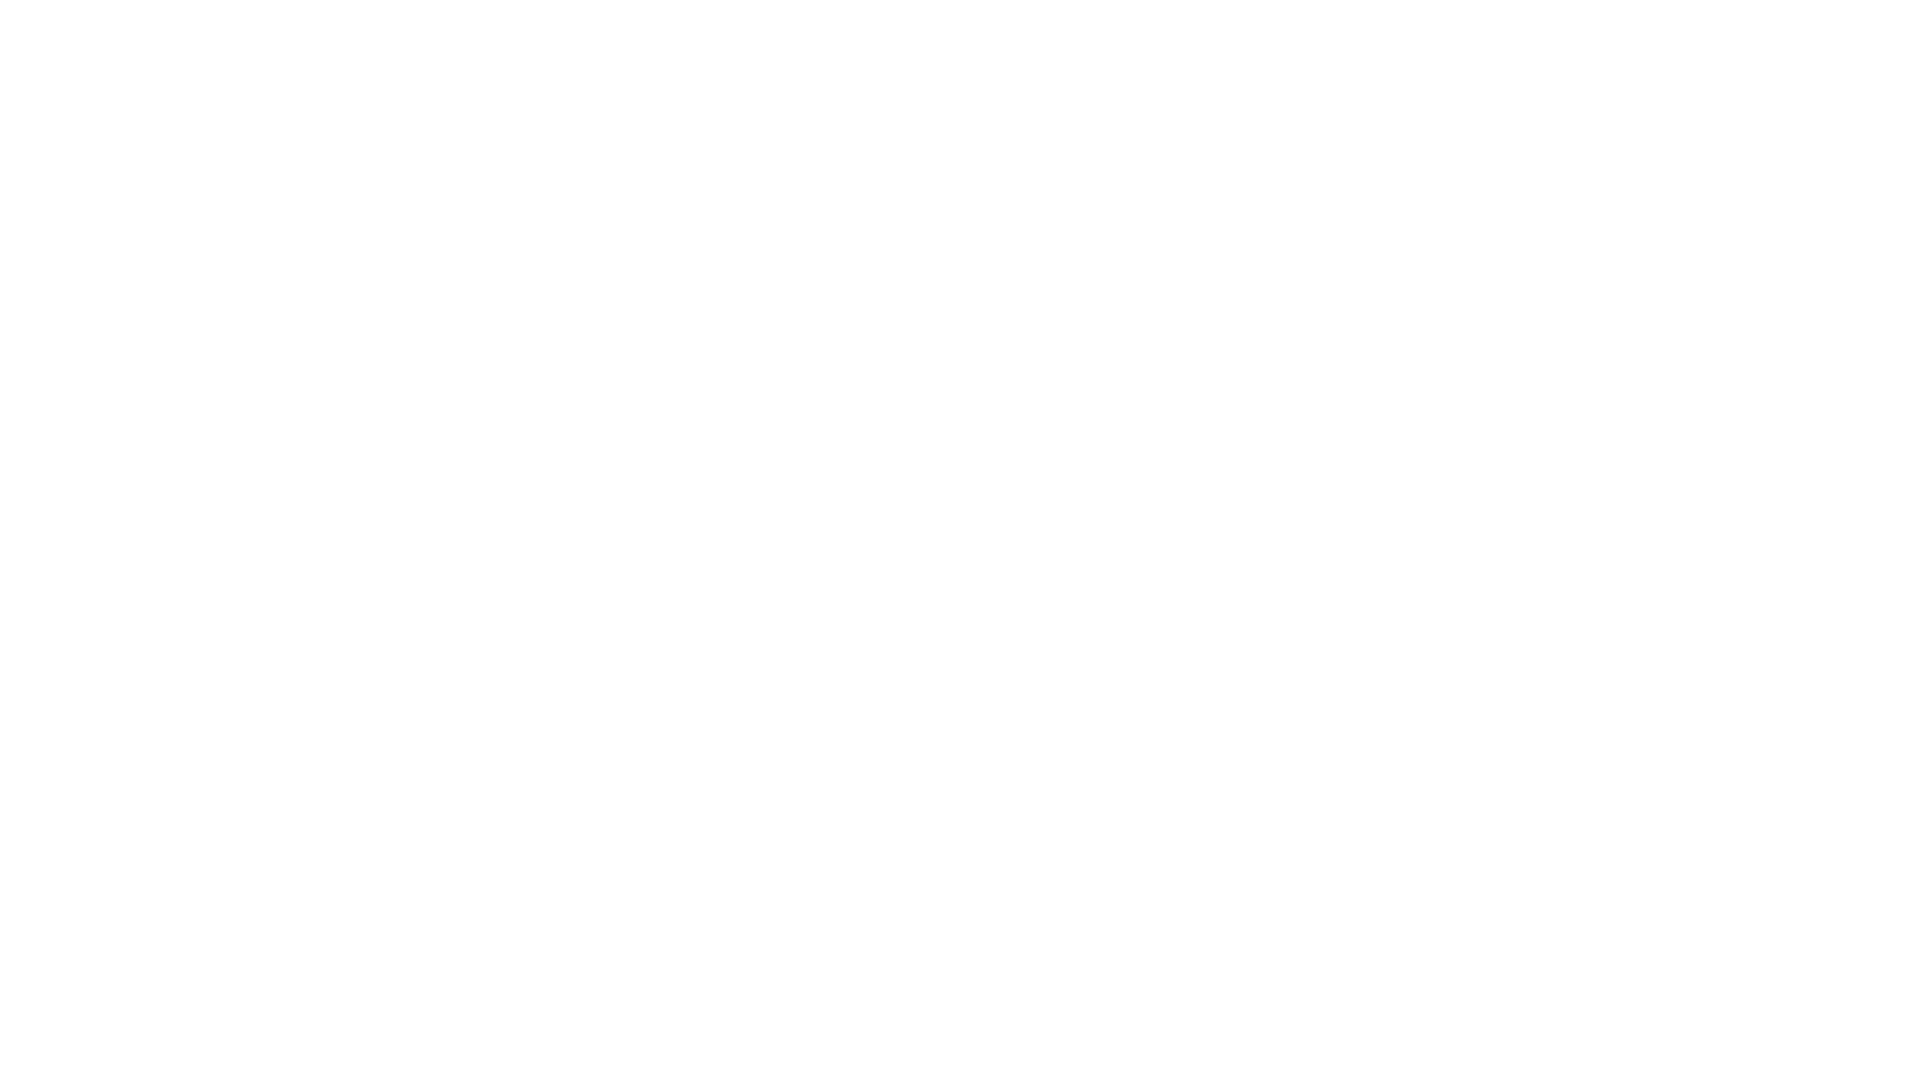 psychometric-tools